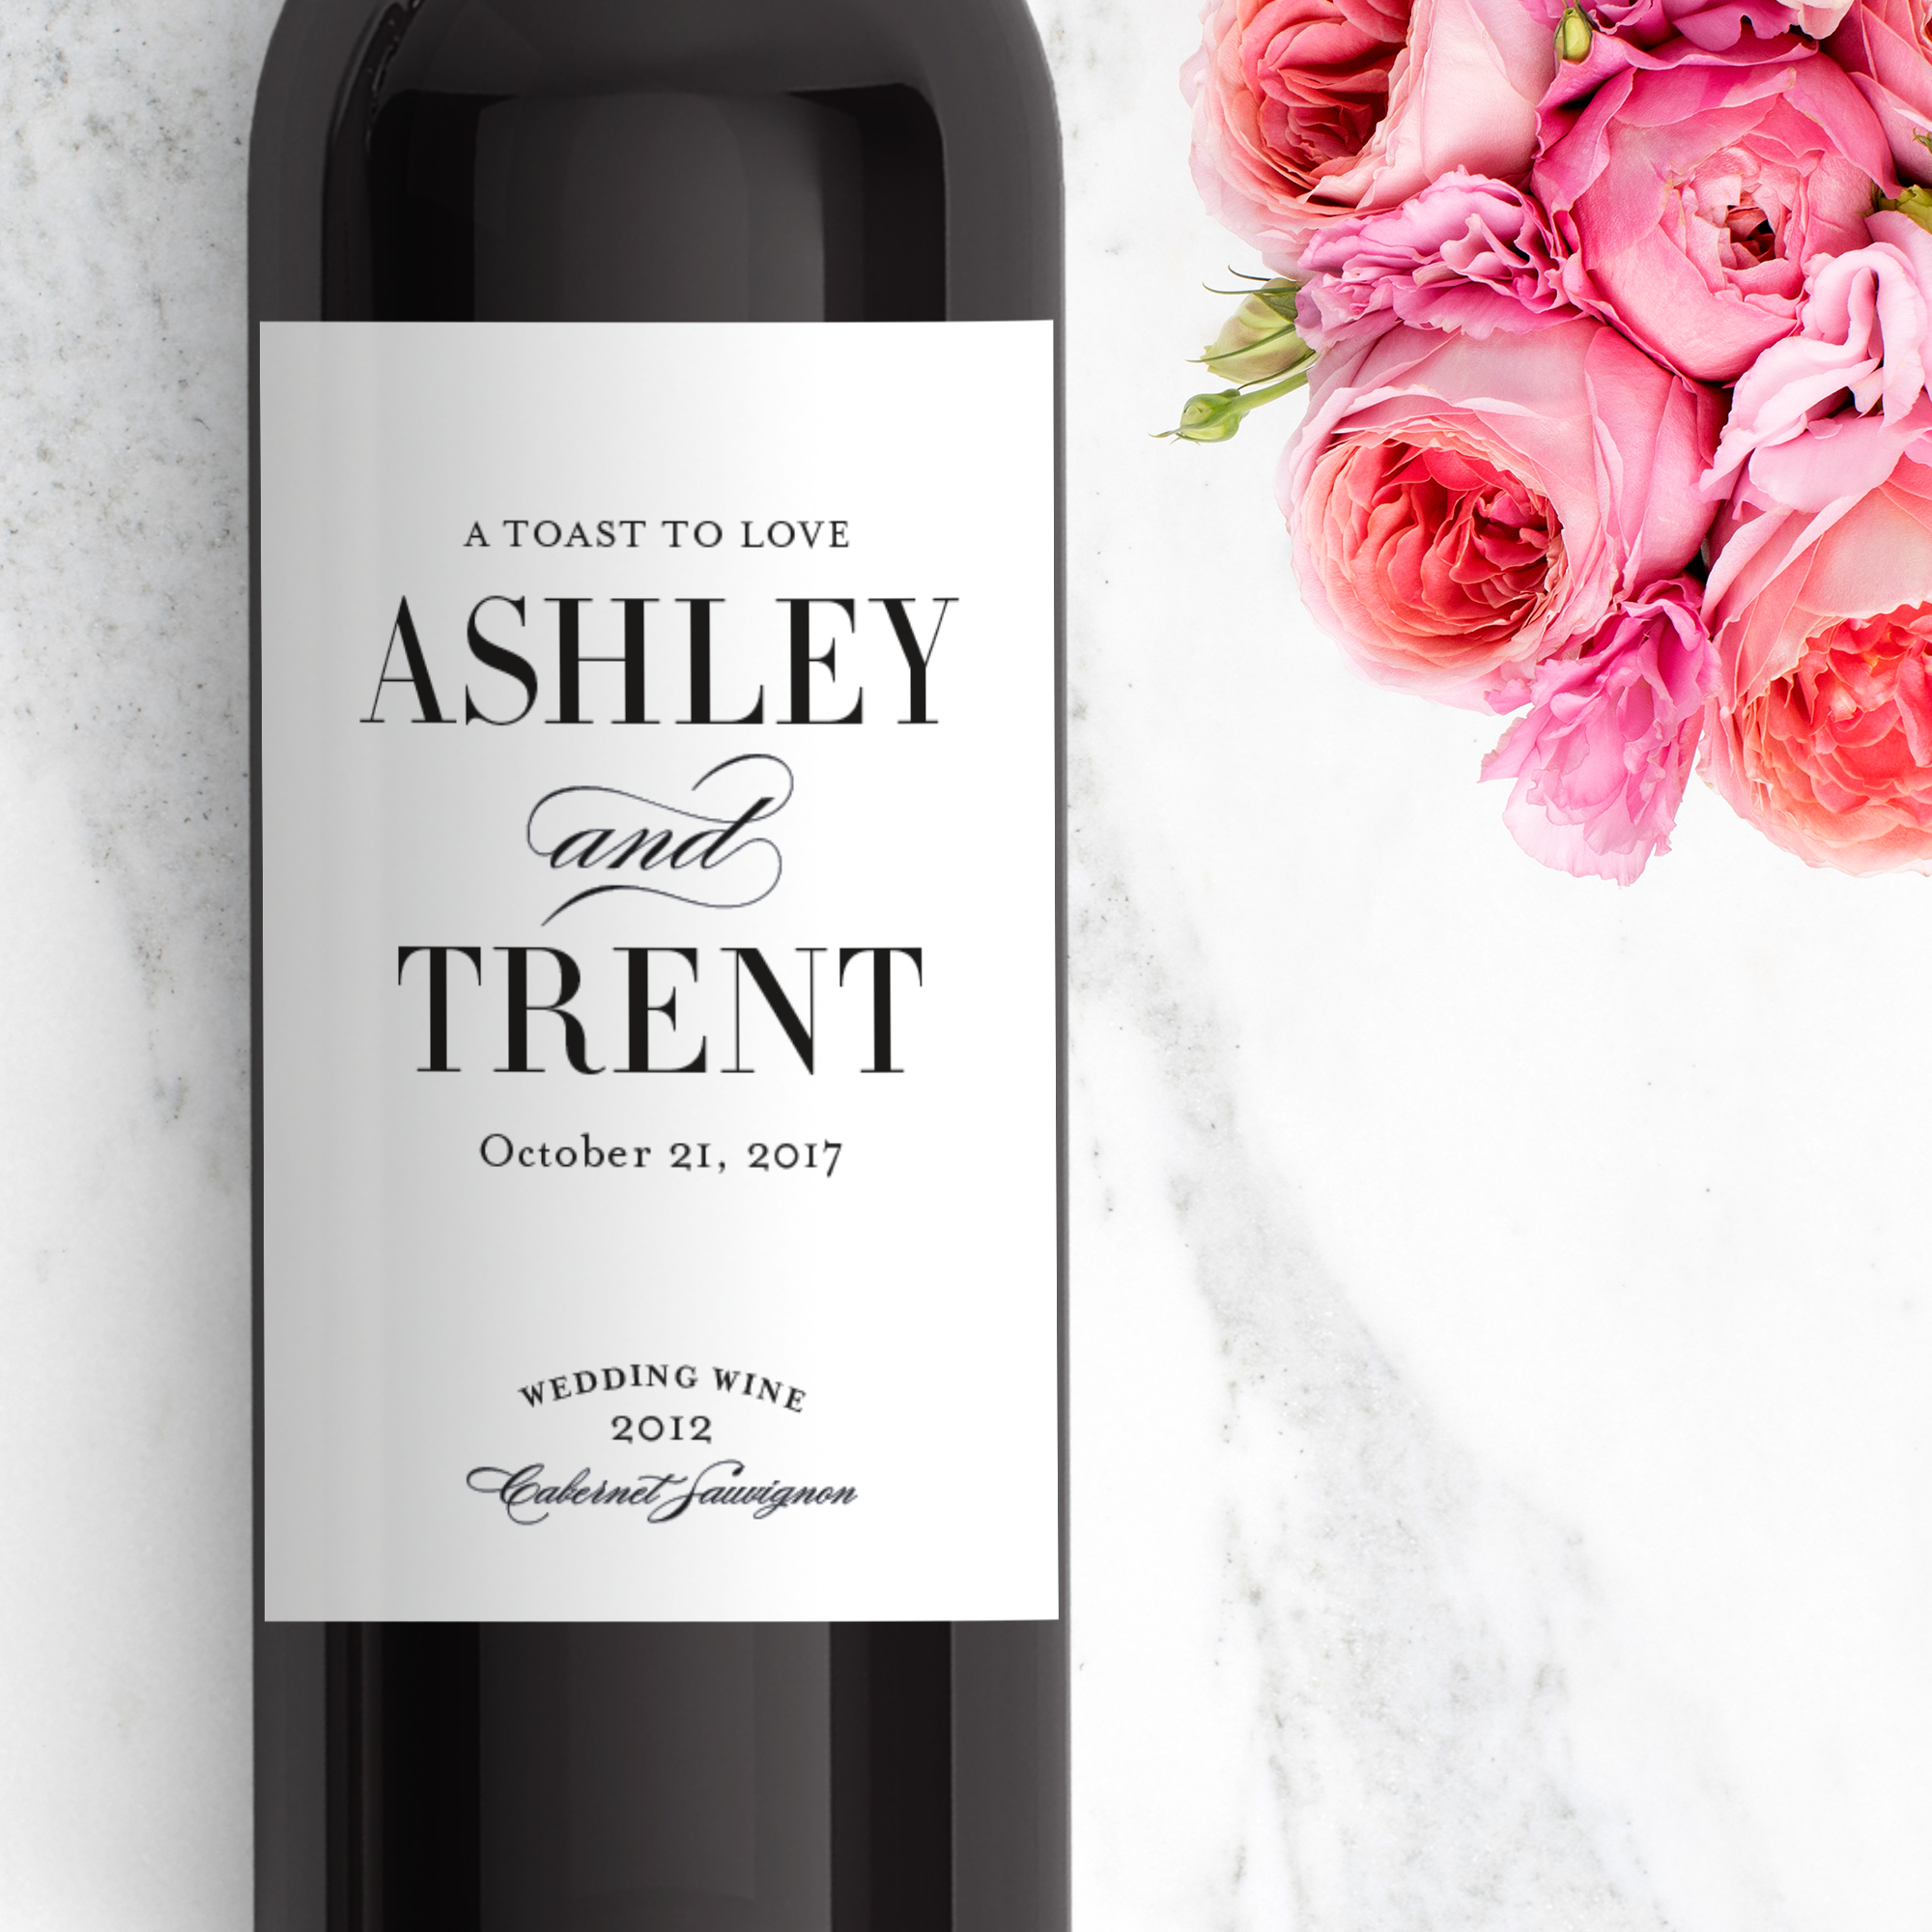 Wedding Wine Labels - by www.labelwithlove.com